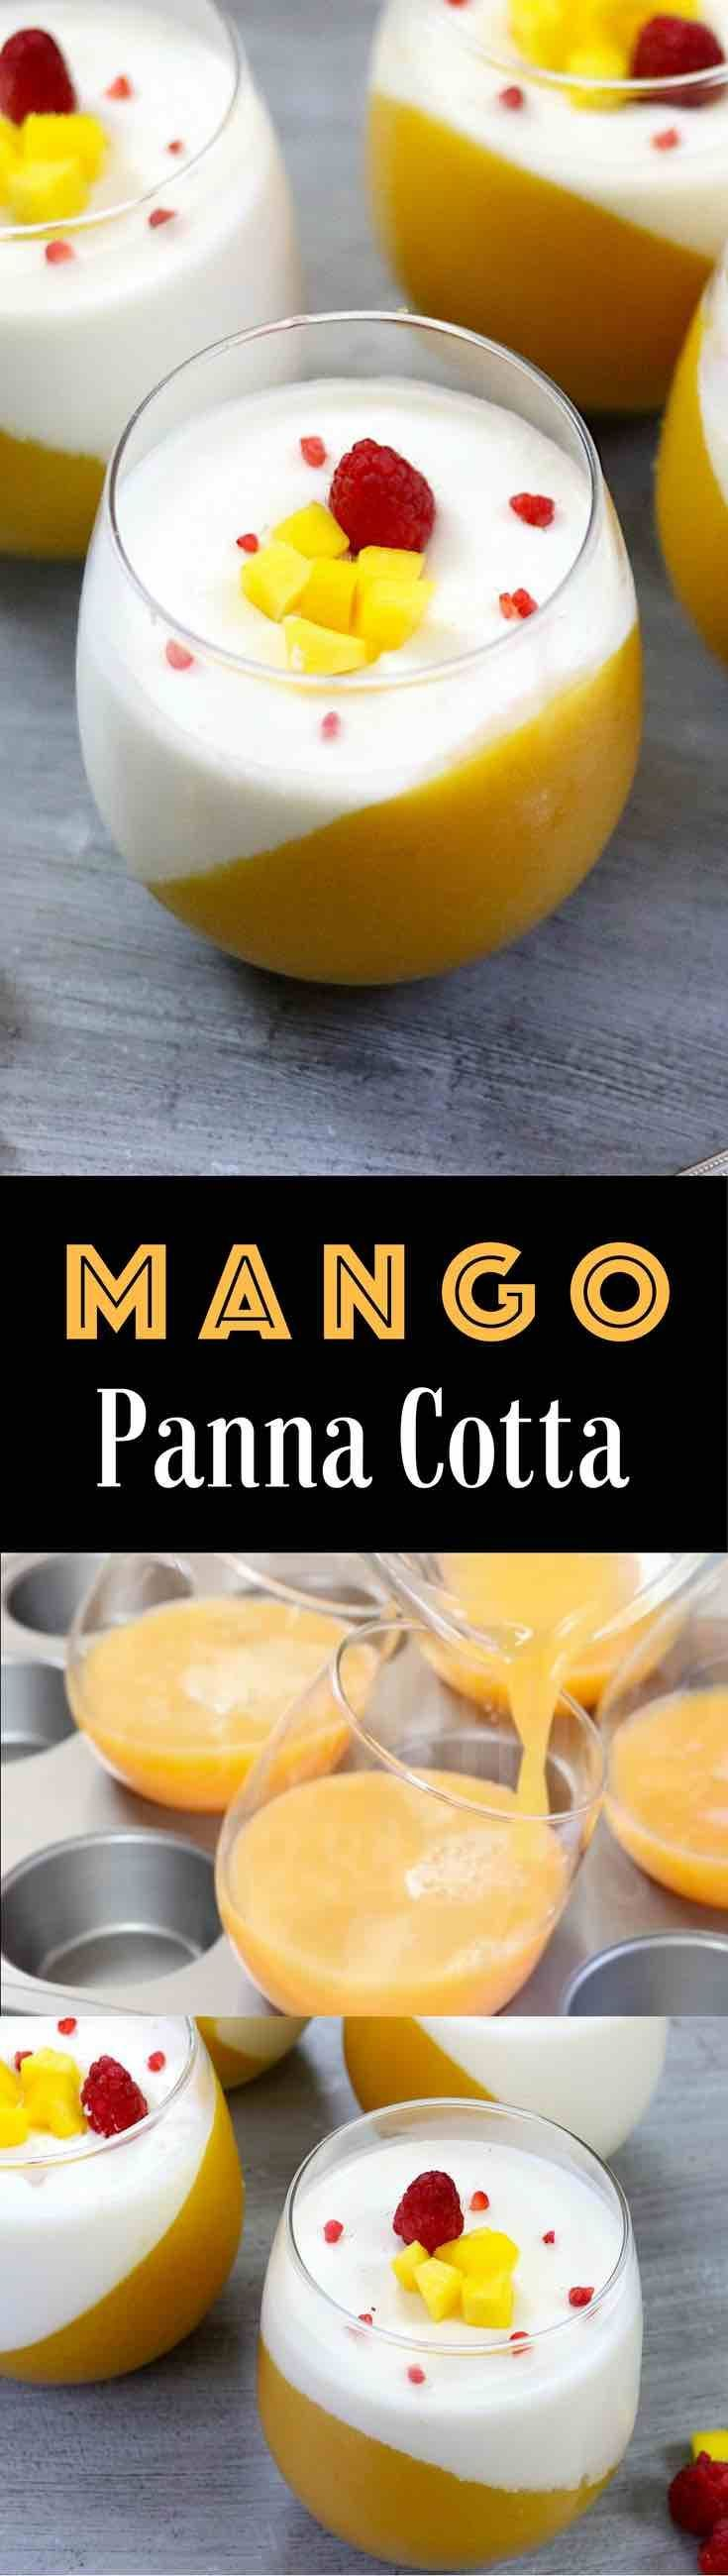 The Best Mango Panna Cotta – looks so elegant and tastes so delicious that you won't believe how easy it is to make! Creamy, rich and smooth dessert topped with fresh mango and raspberries. All you need is some simple ingredients: fresh mango, mango juice